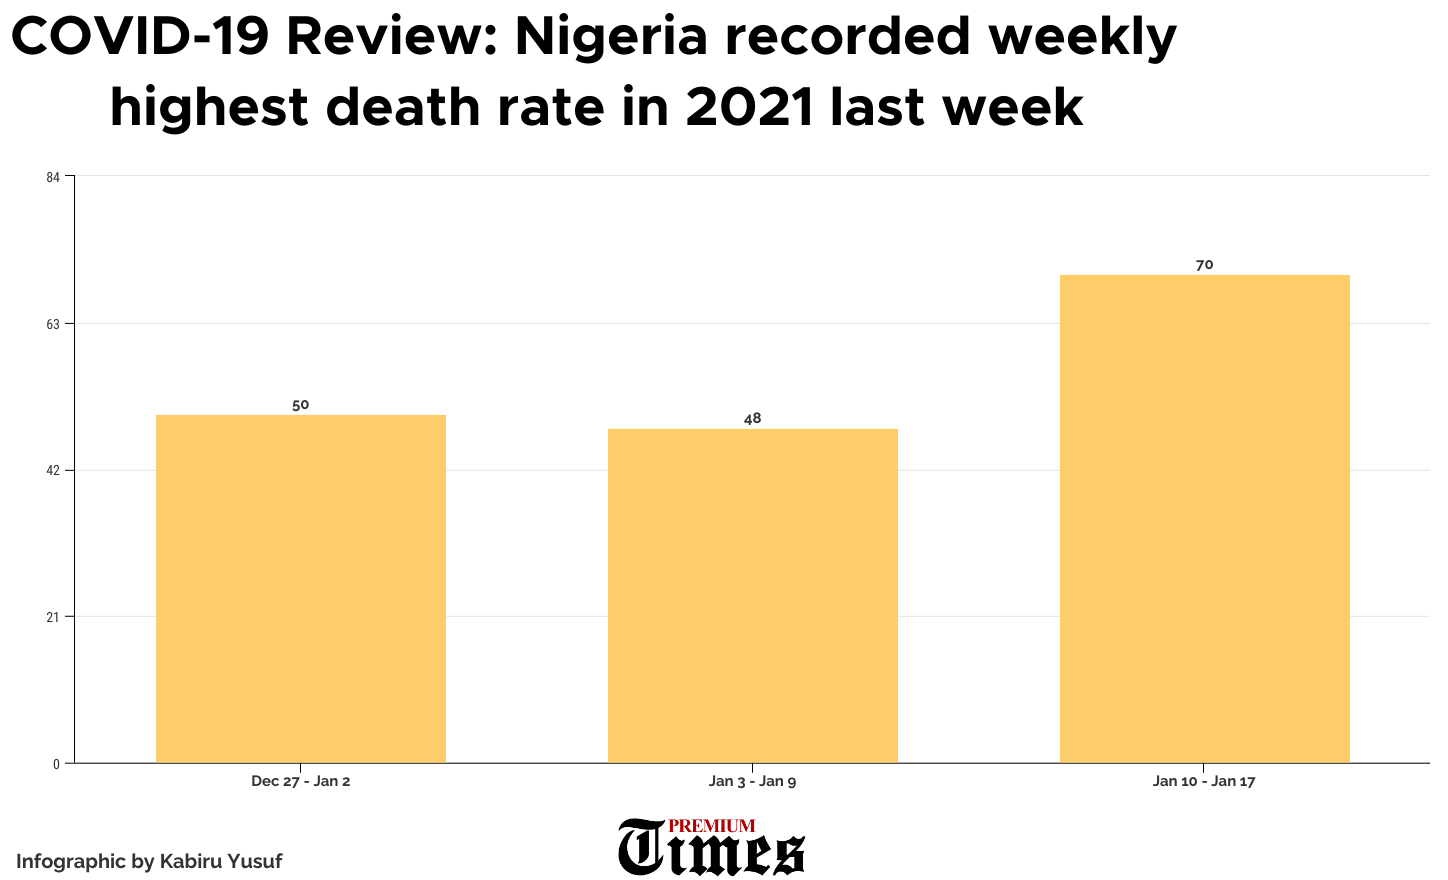 COVID-19 Review: Nigeria recorded highest death rate in 2021 last week